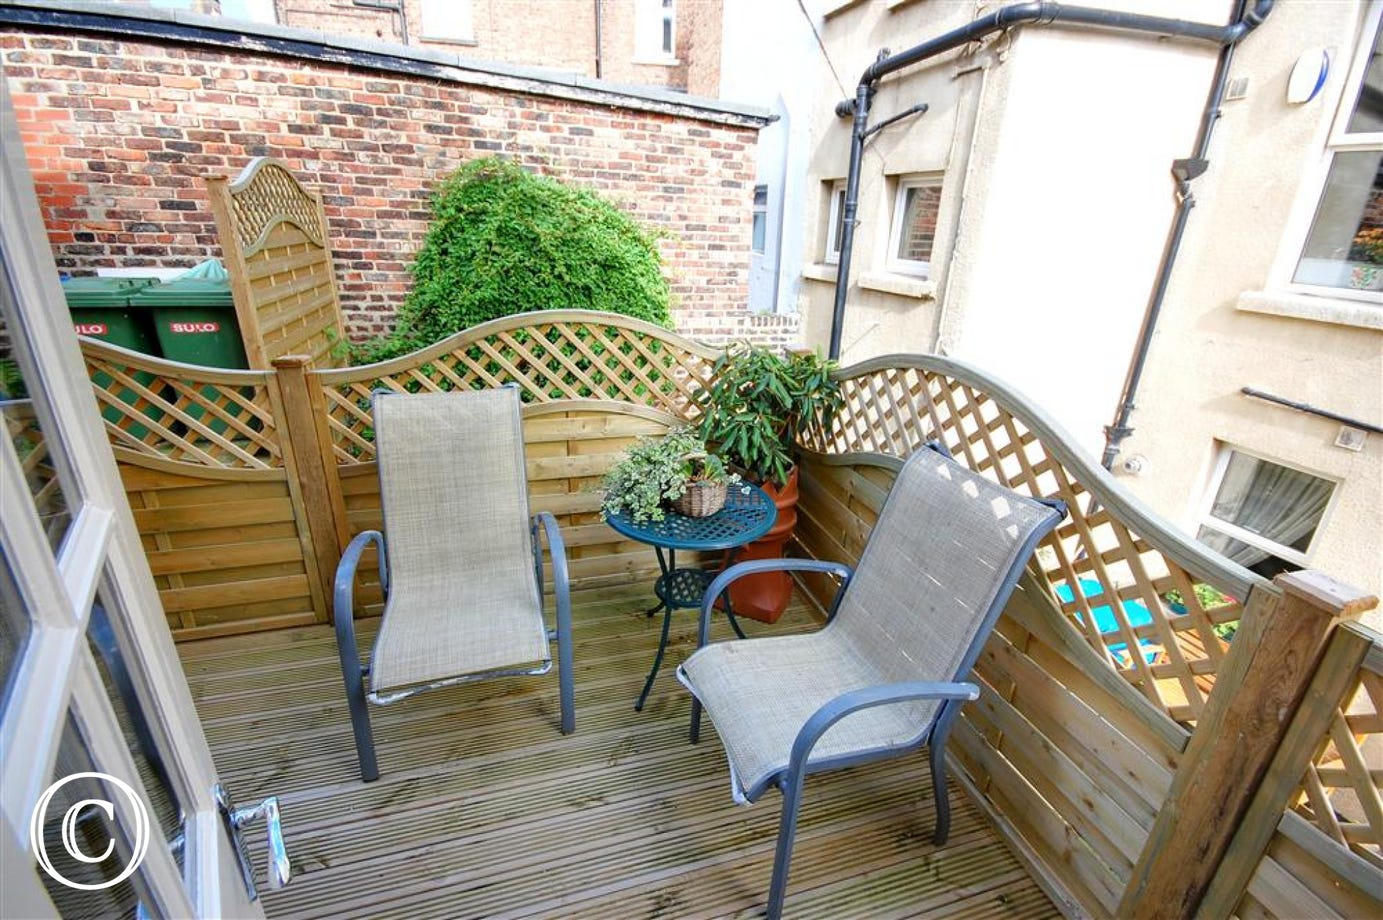 Lovely outdoor decking area, perfect for that evening drink!